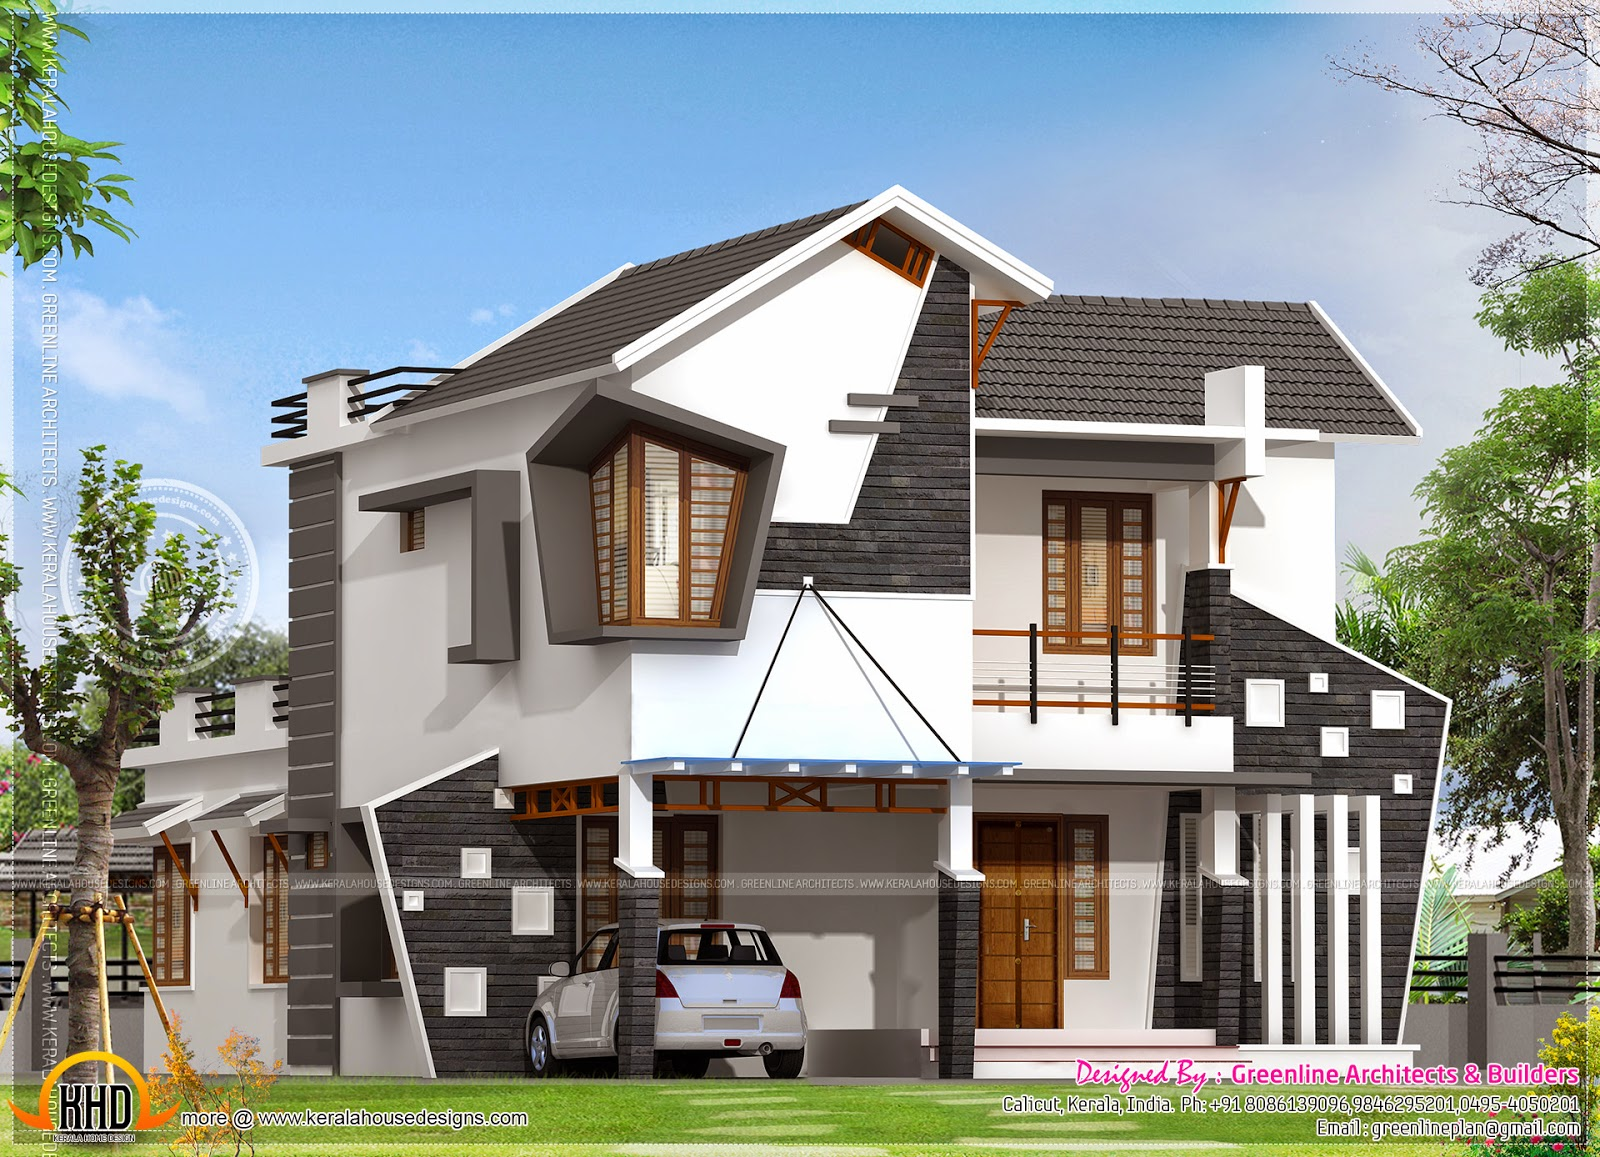 beautiful home design flat roof style keralahousedesigns